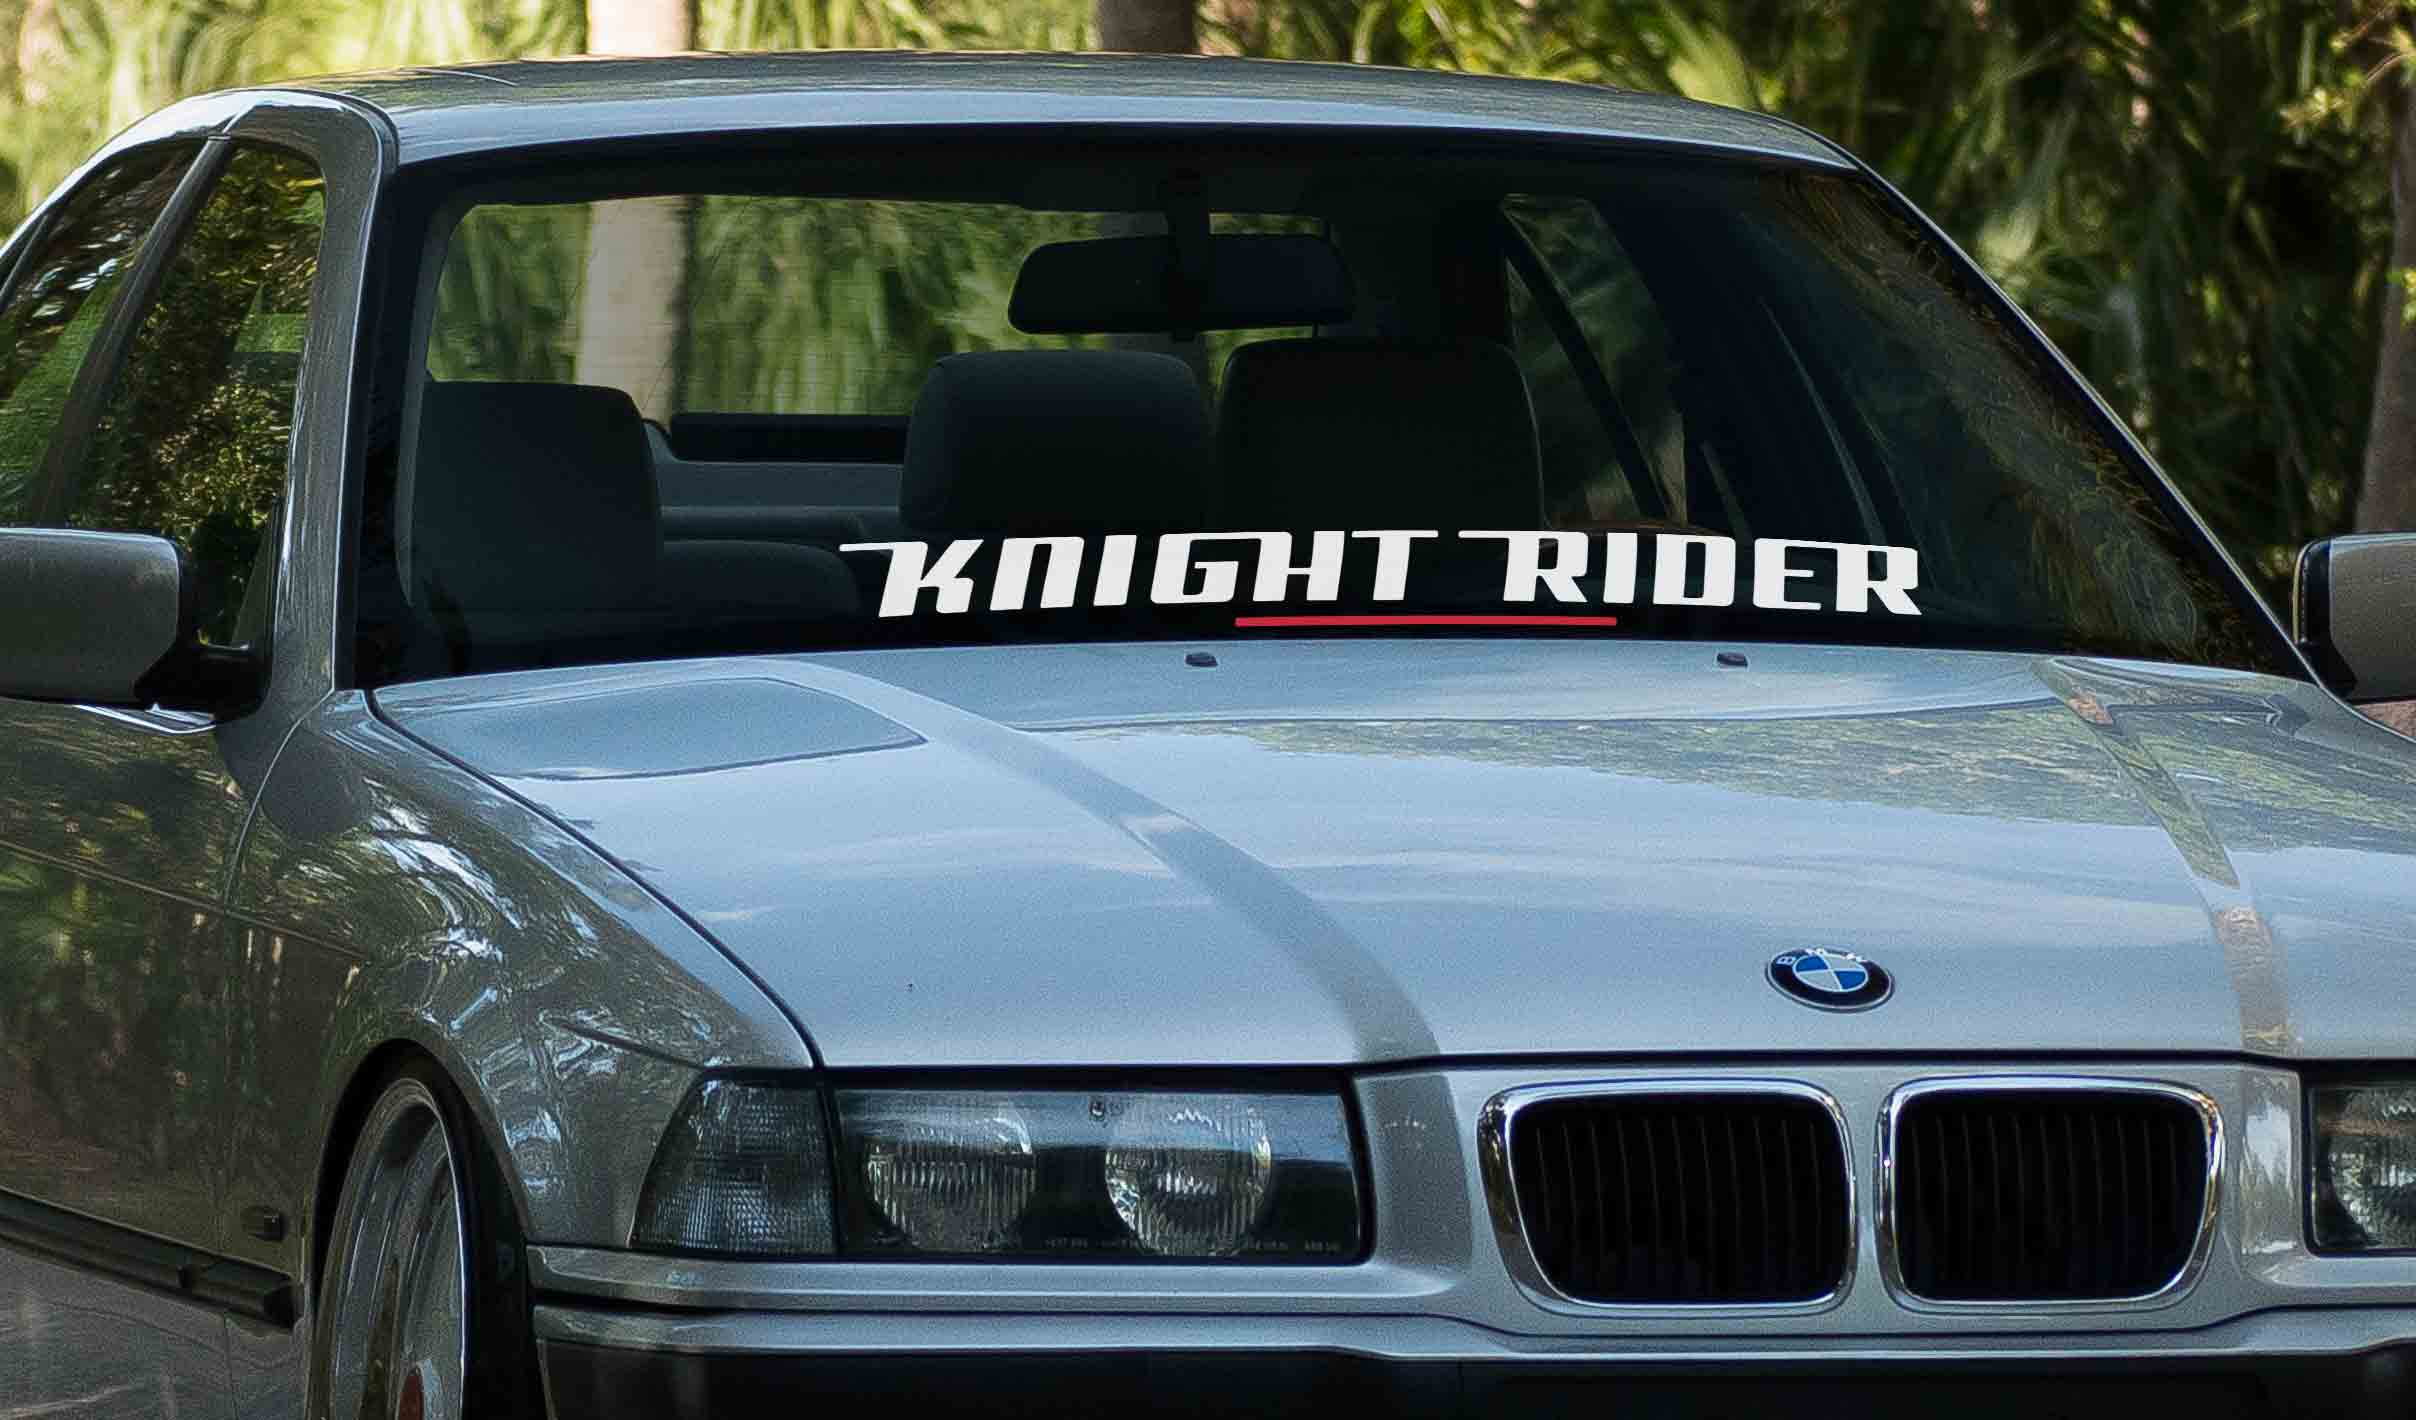 Knight Rider car vinyl windshield banner